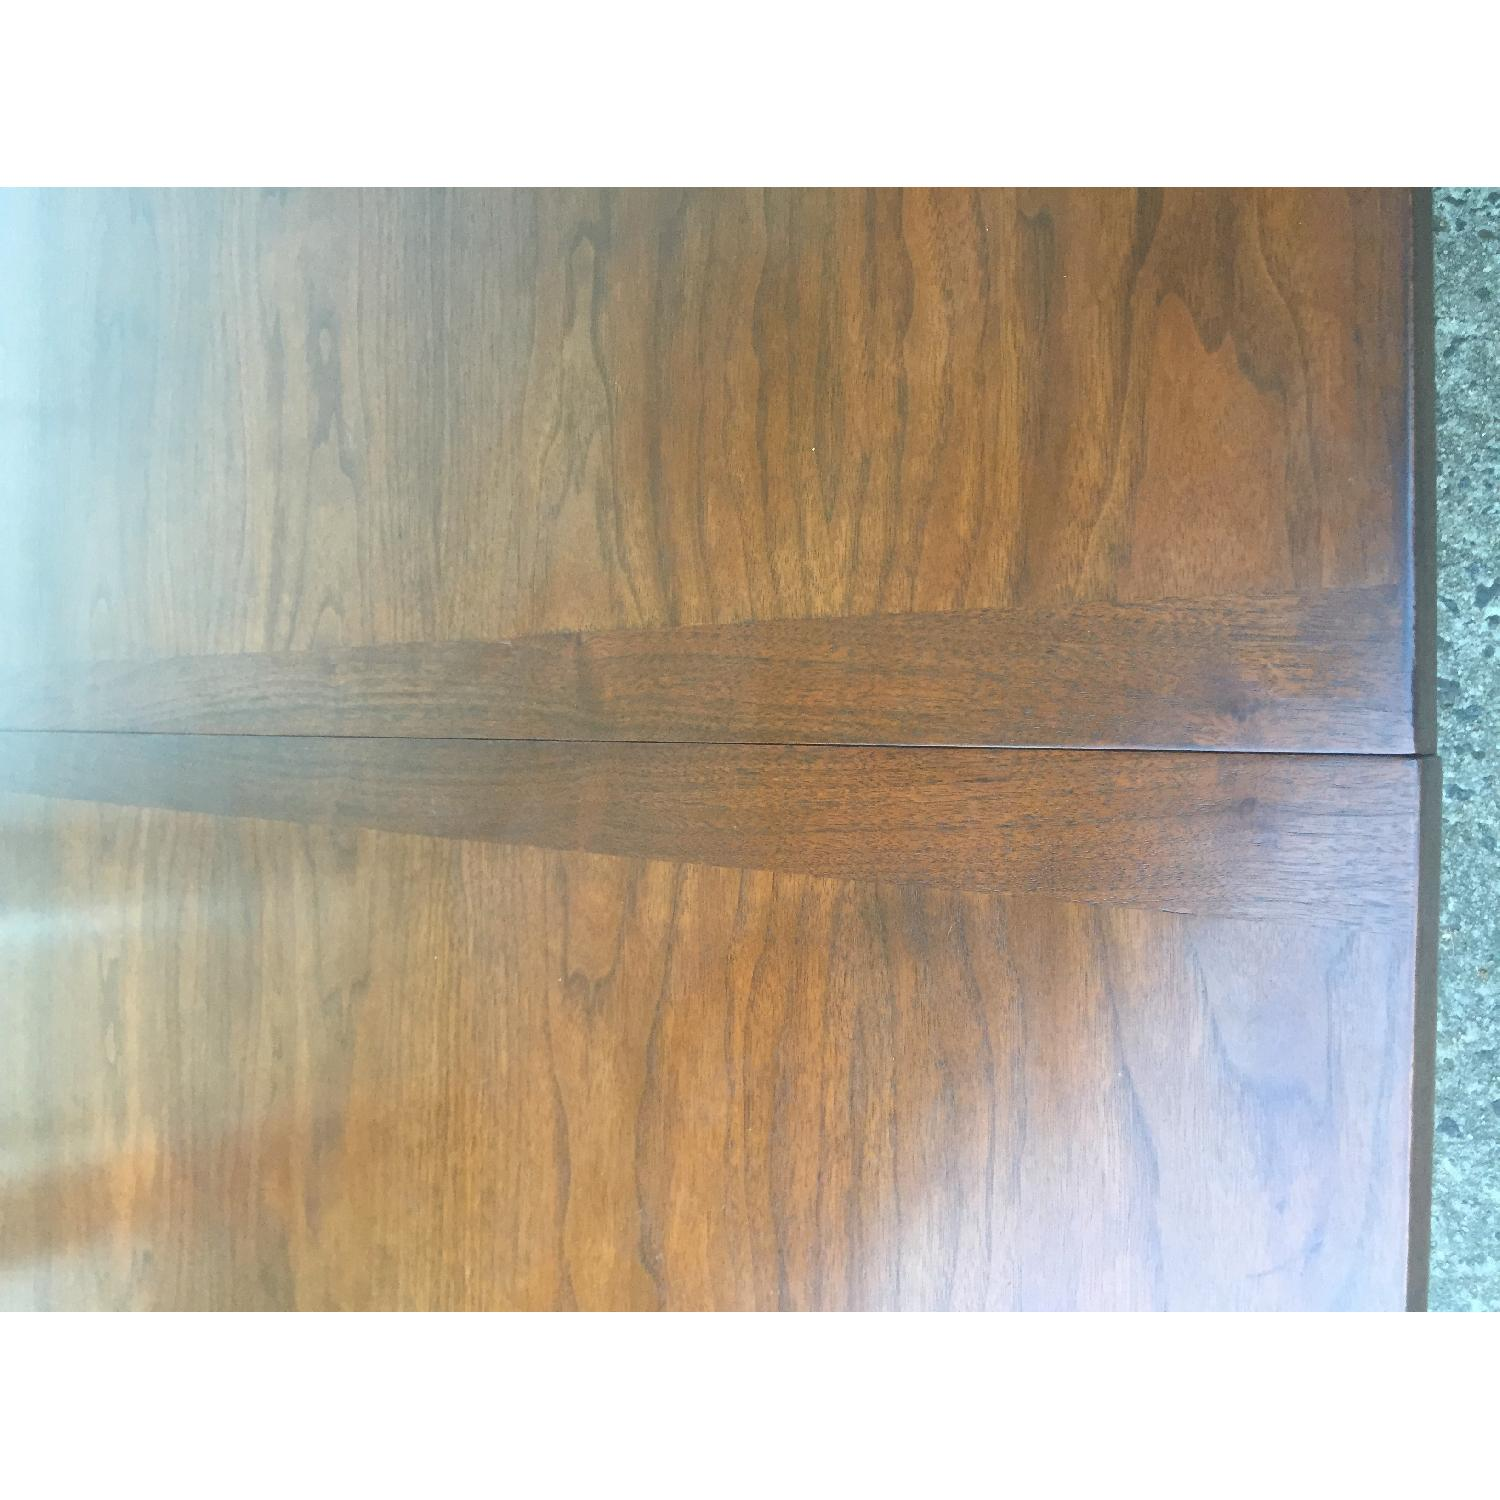 Mid Century Modern Walnut Dining Table with Brass Accents - image-10